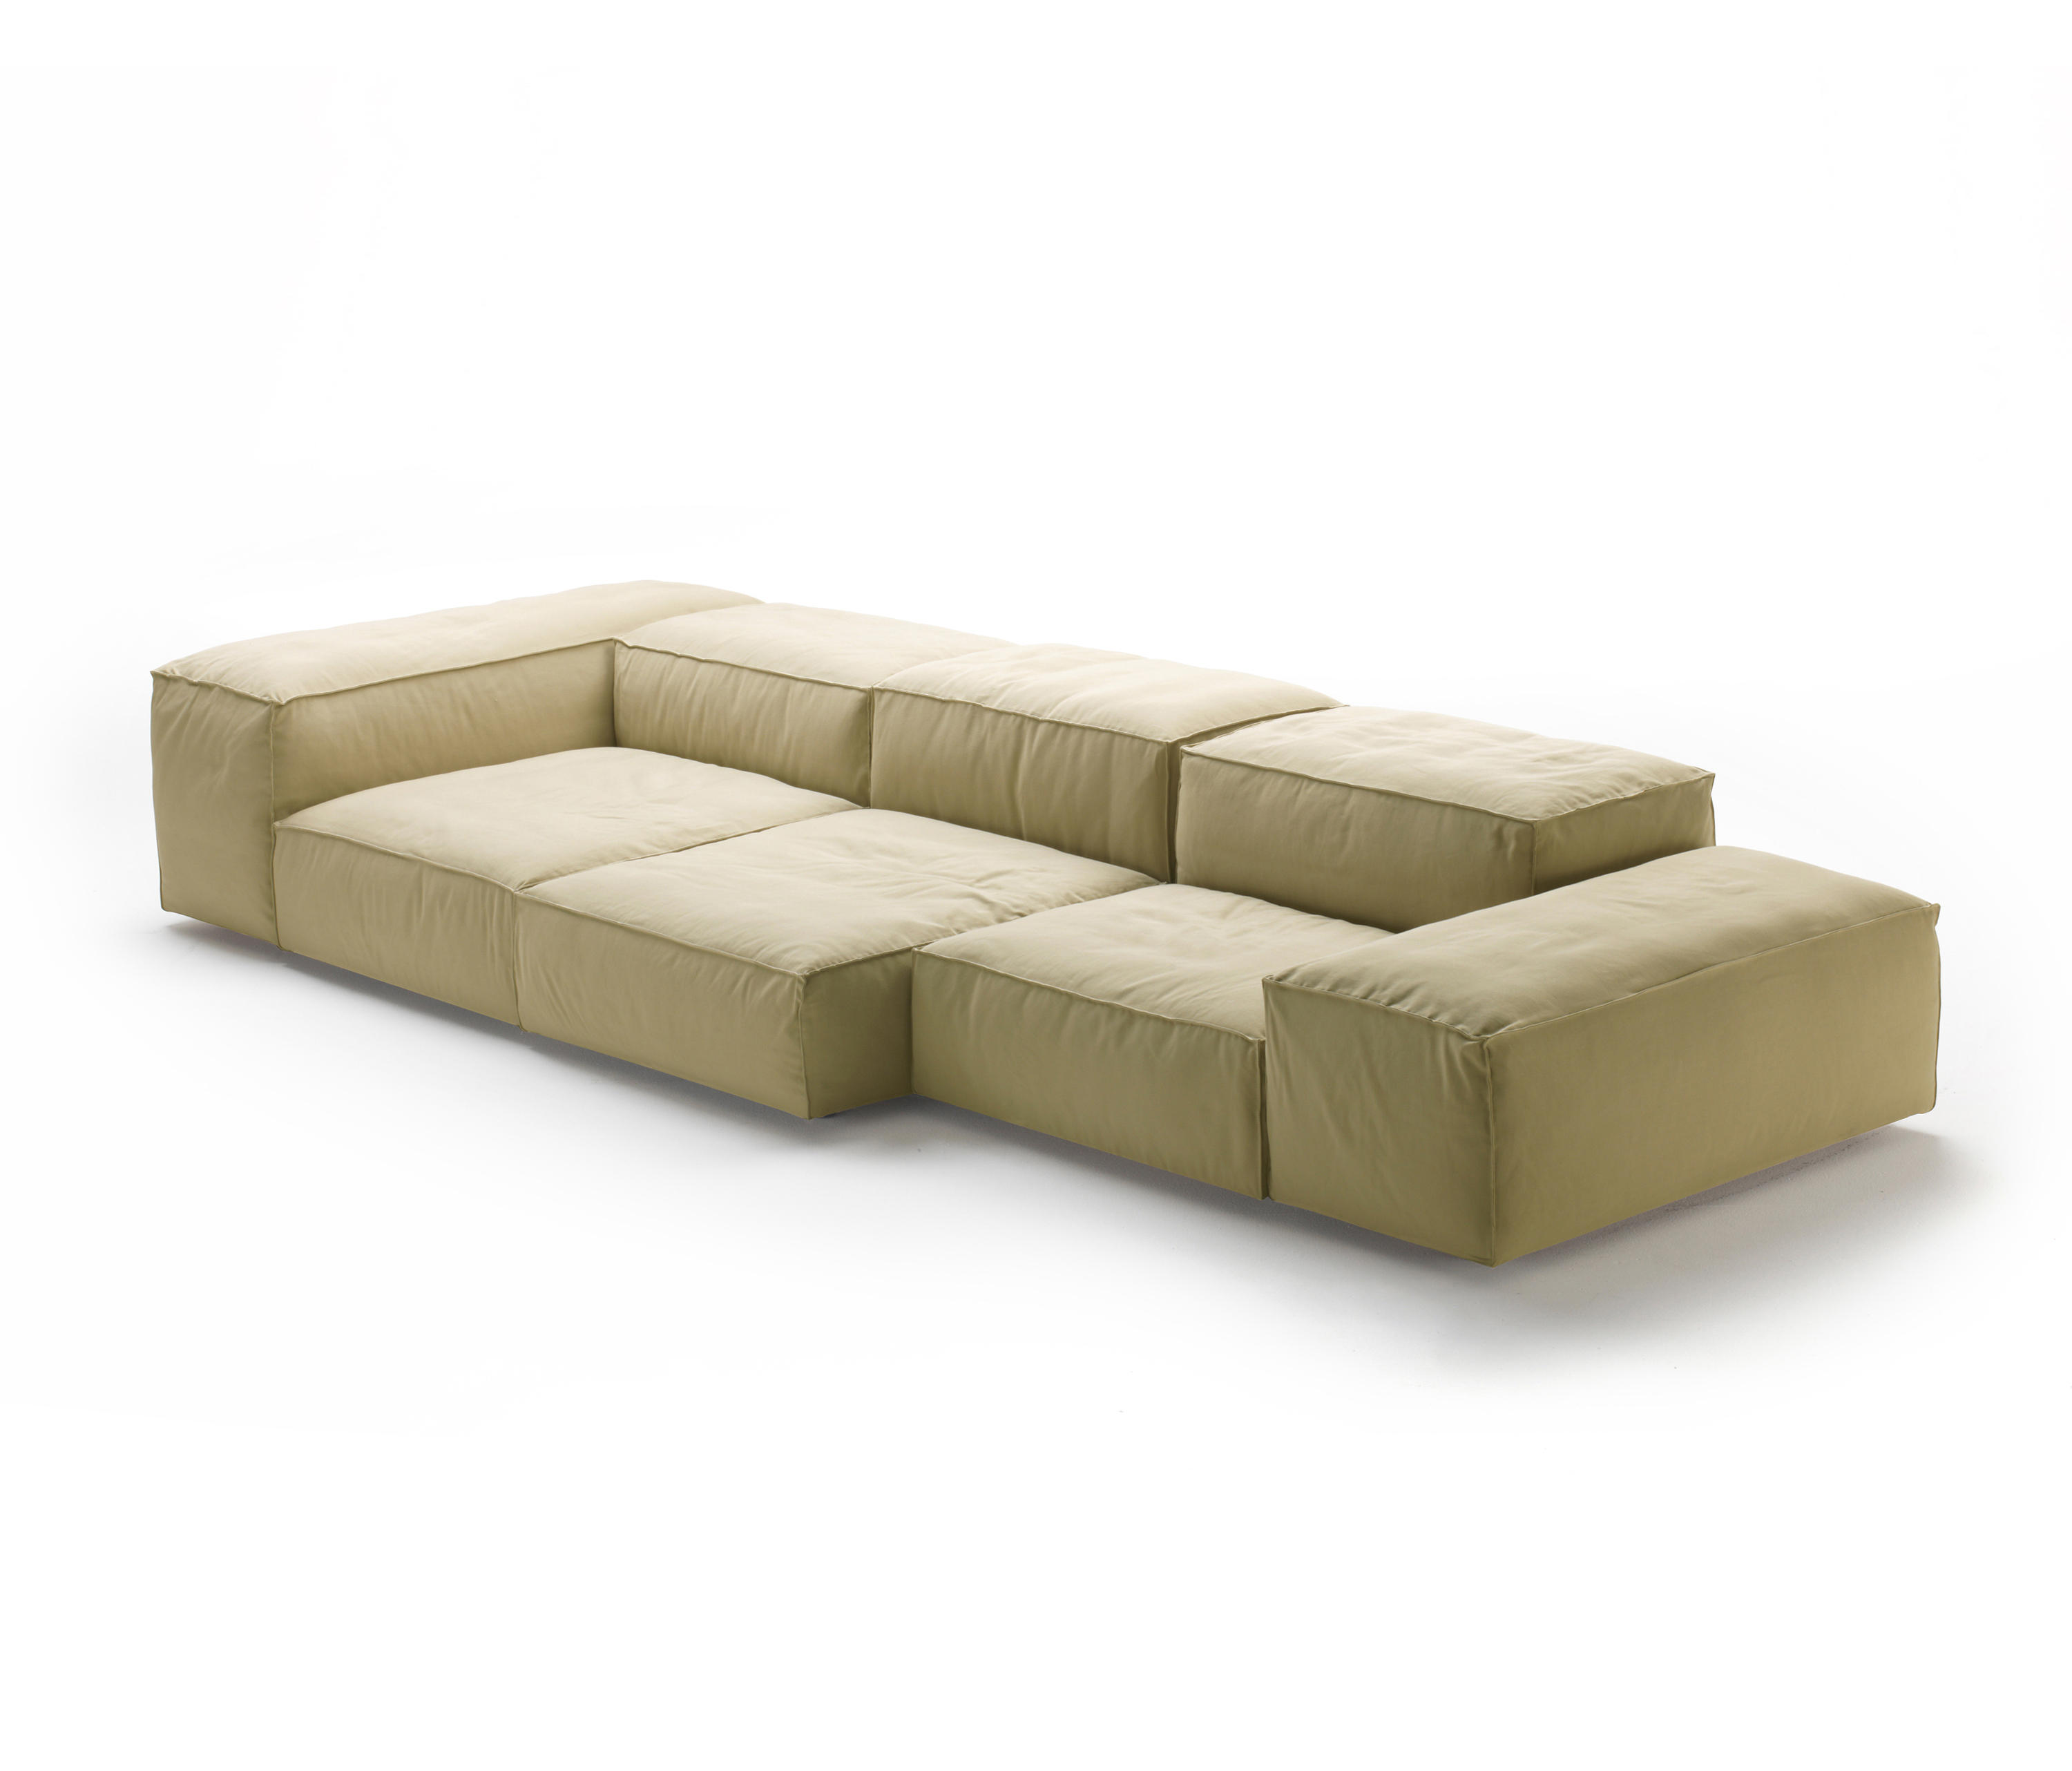 EXTRASOFT - Sofas from Living Divani | Architonic